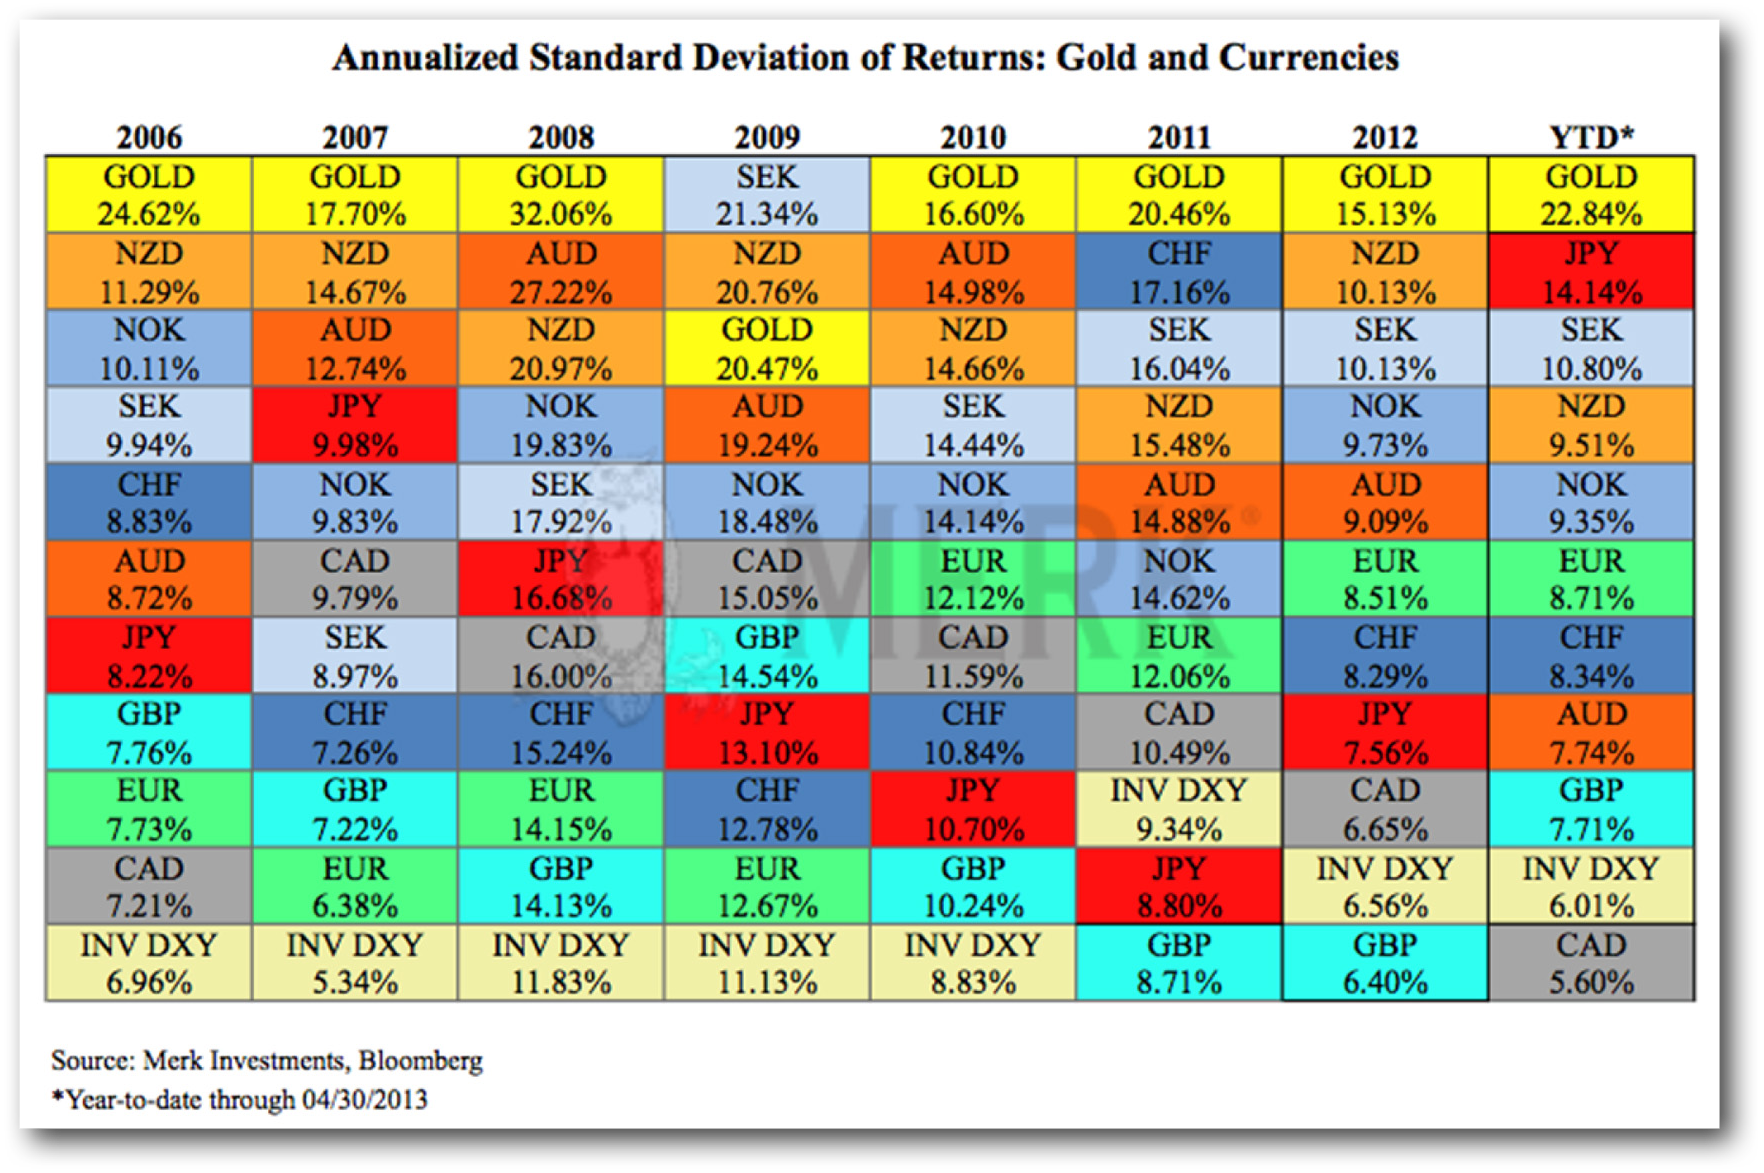 Annualized_Standard_Deviation_Returns_Gold_Currencies.jpg